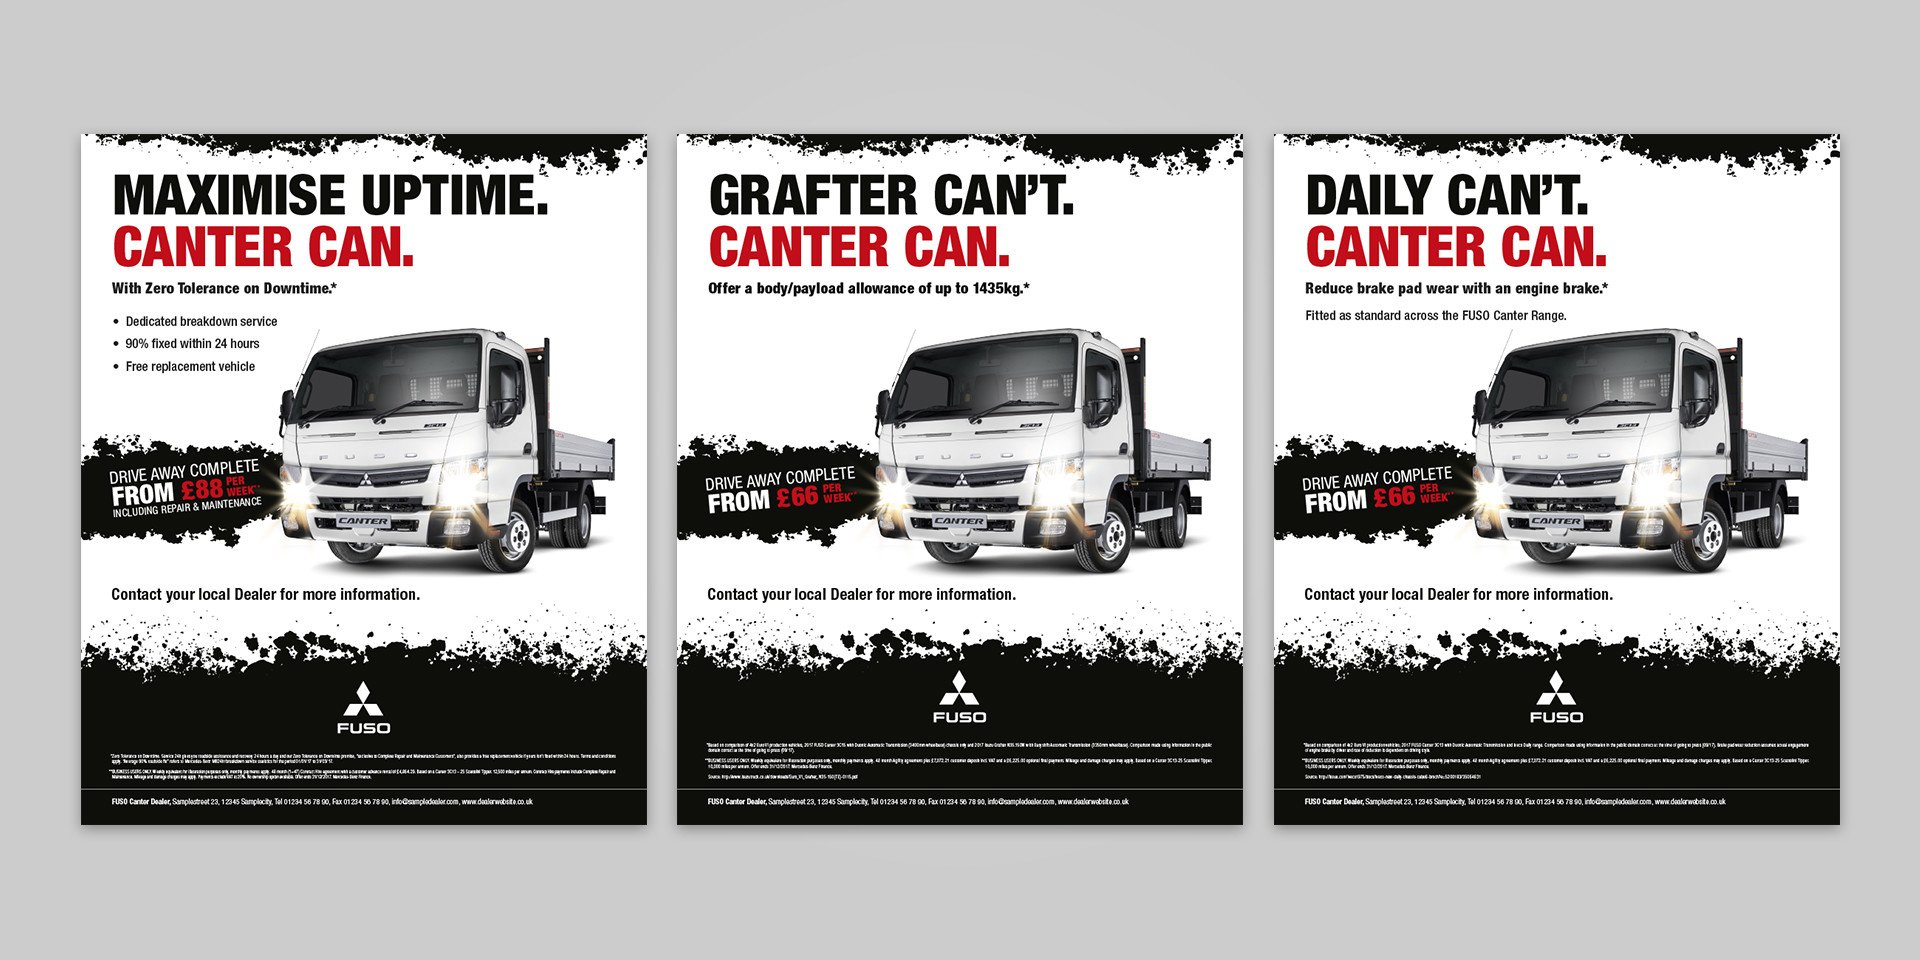 Canter can campaign